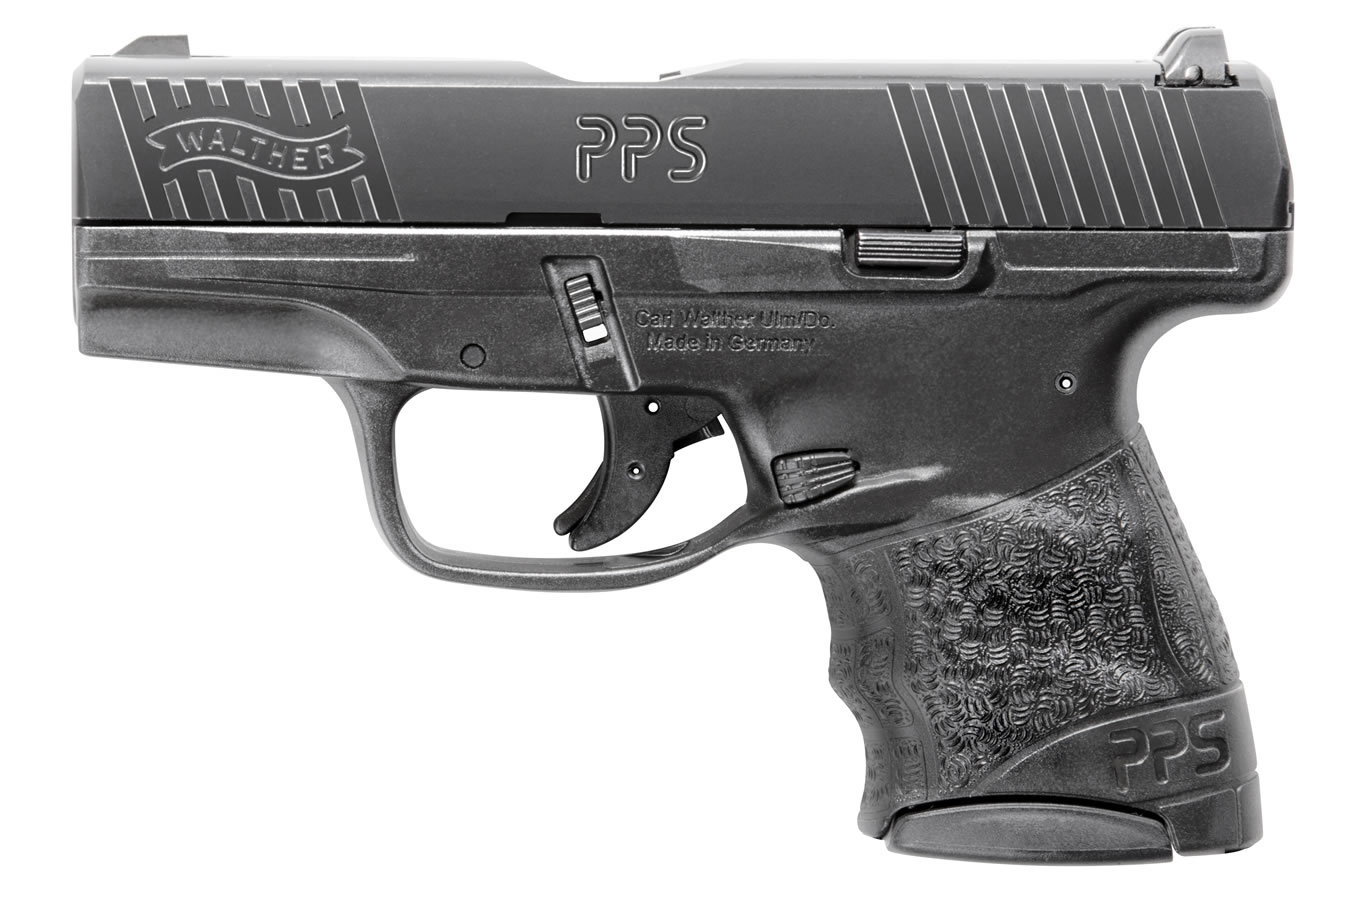 product photo of Walther PPS M2 handgun